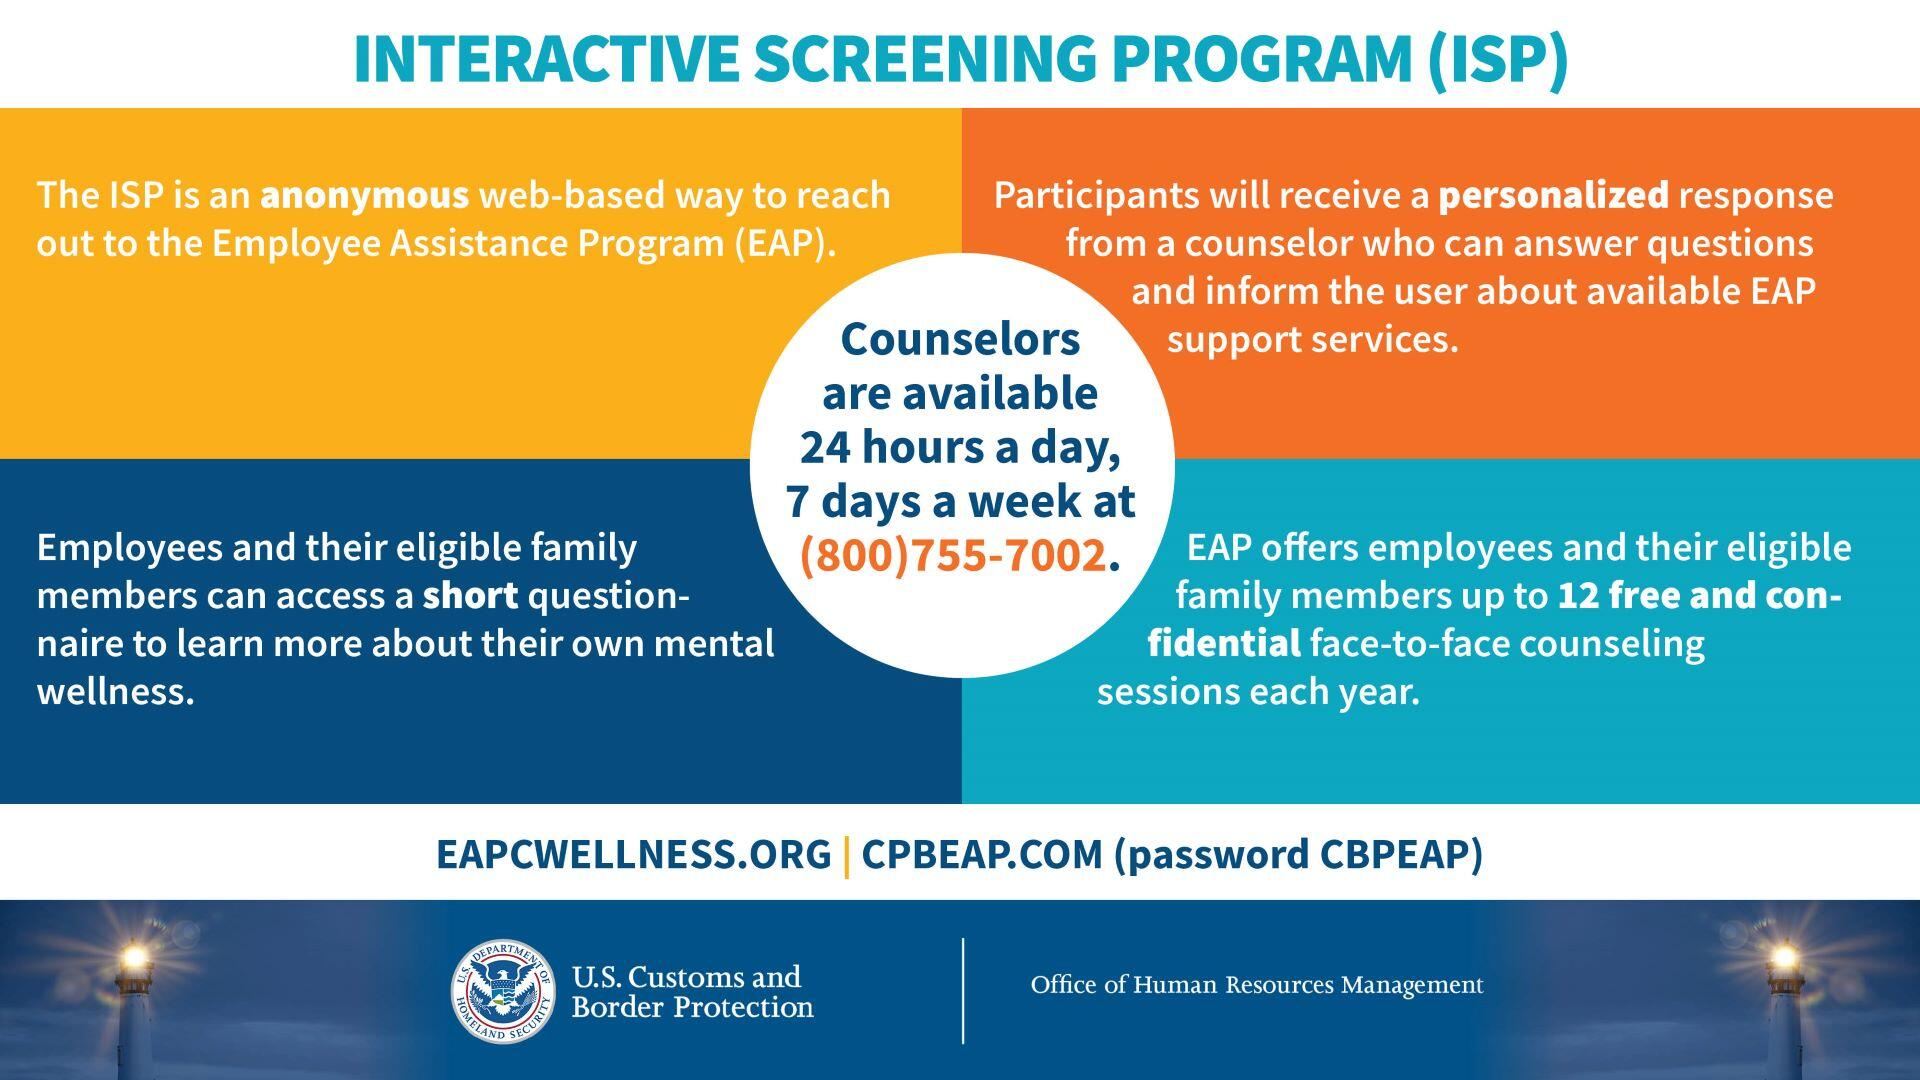 ISP is an anonymous web-based way to reach out to the EAP. Employees and their eligible family members can access a short questionnaire to learn more about their mental health. Participants will receive personalized response from counselor who can answer questions and inform about available EAP support services. EAP offers employees and their eligible family members up to 12 free and confidential face-to-face counseling sessions each year.